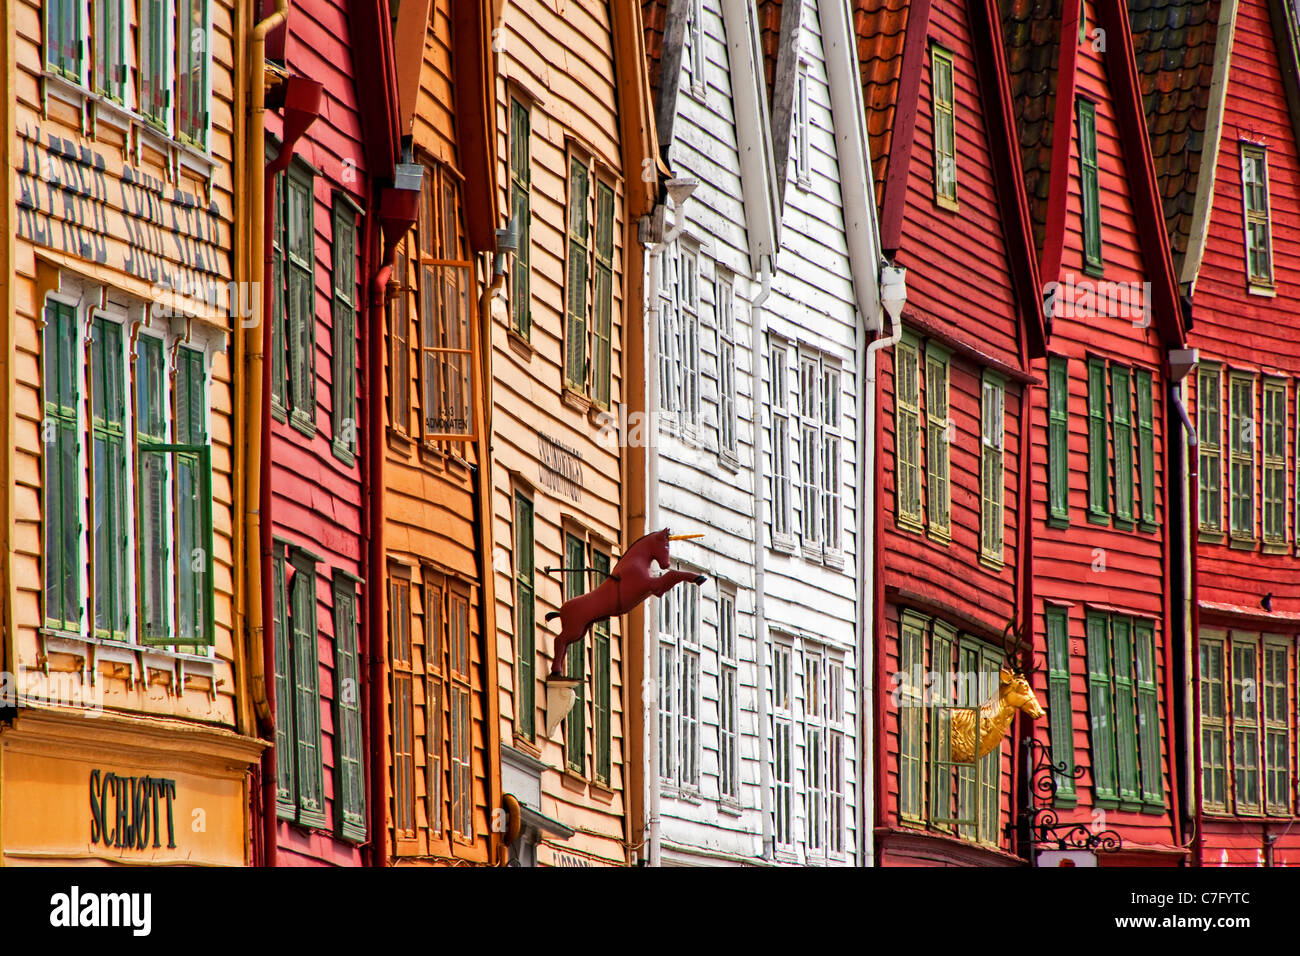 Bergen's old wharf district, Bryggen, wooden warehouse facades in Hanseatic styles & colors - Stock Image